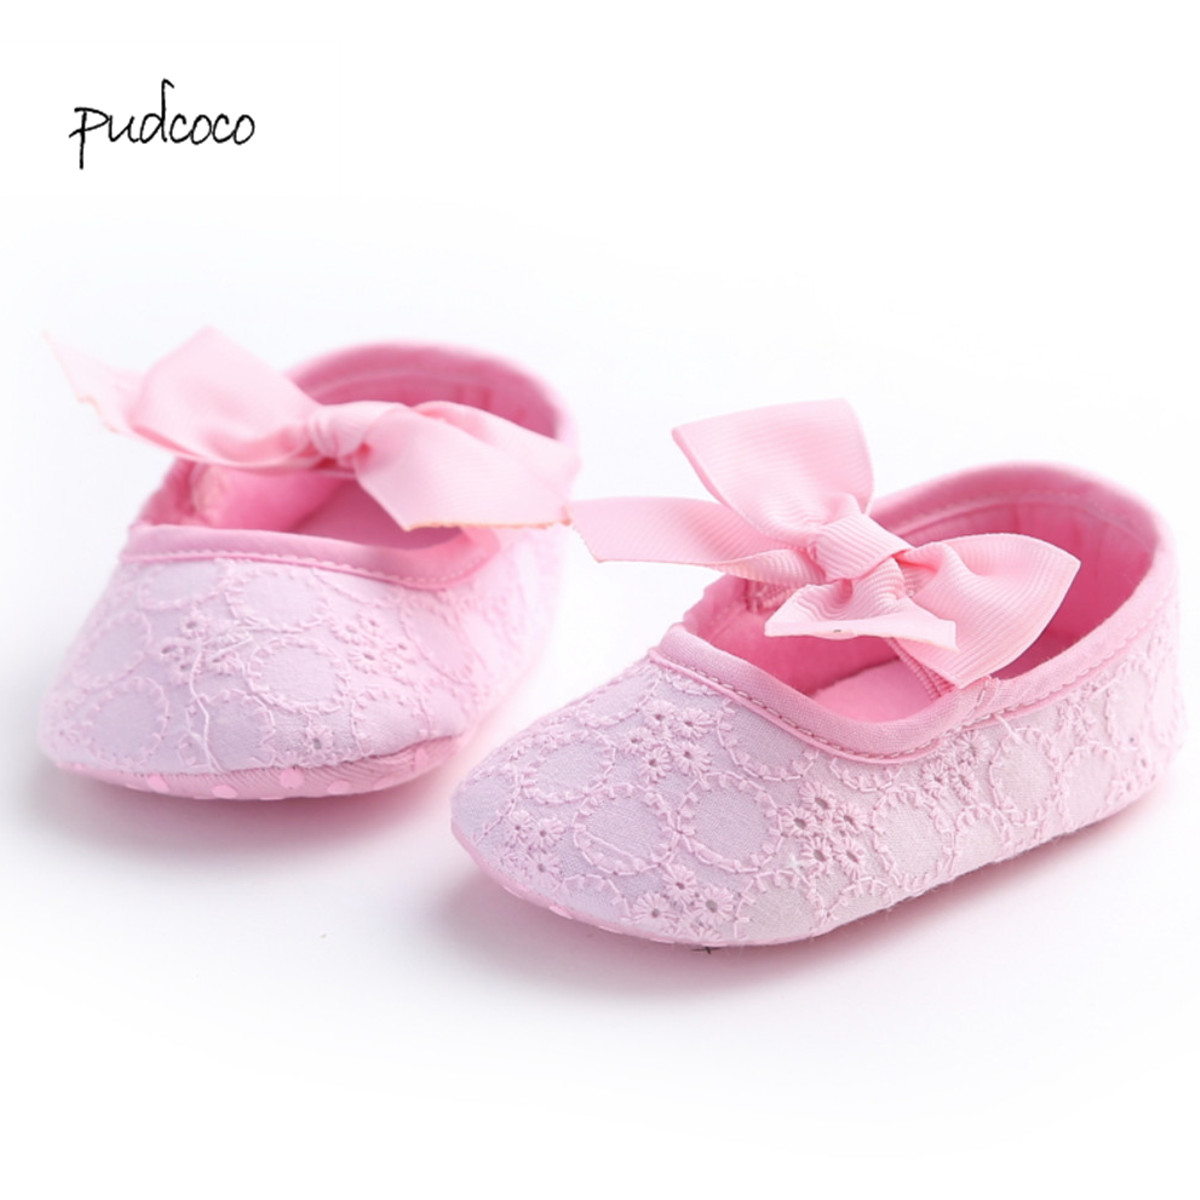 Infant Baby Girl Soft Sole PU Leather Bow Crib Shoes Sneaker Prewalker 0-18Mths